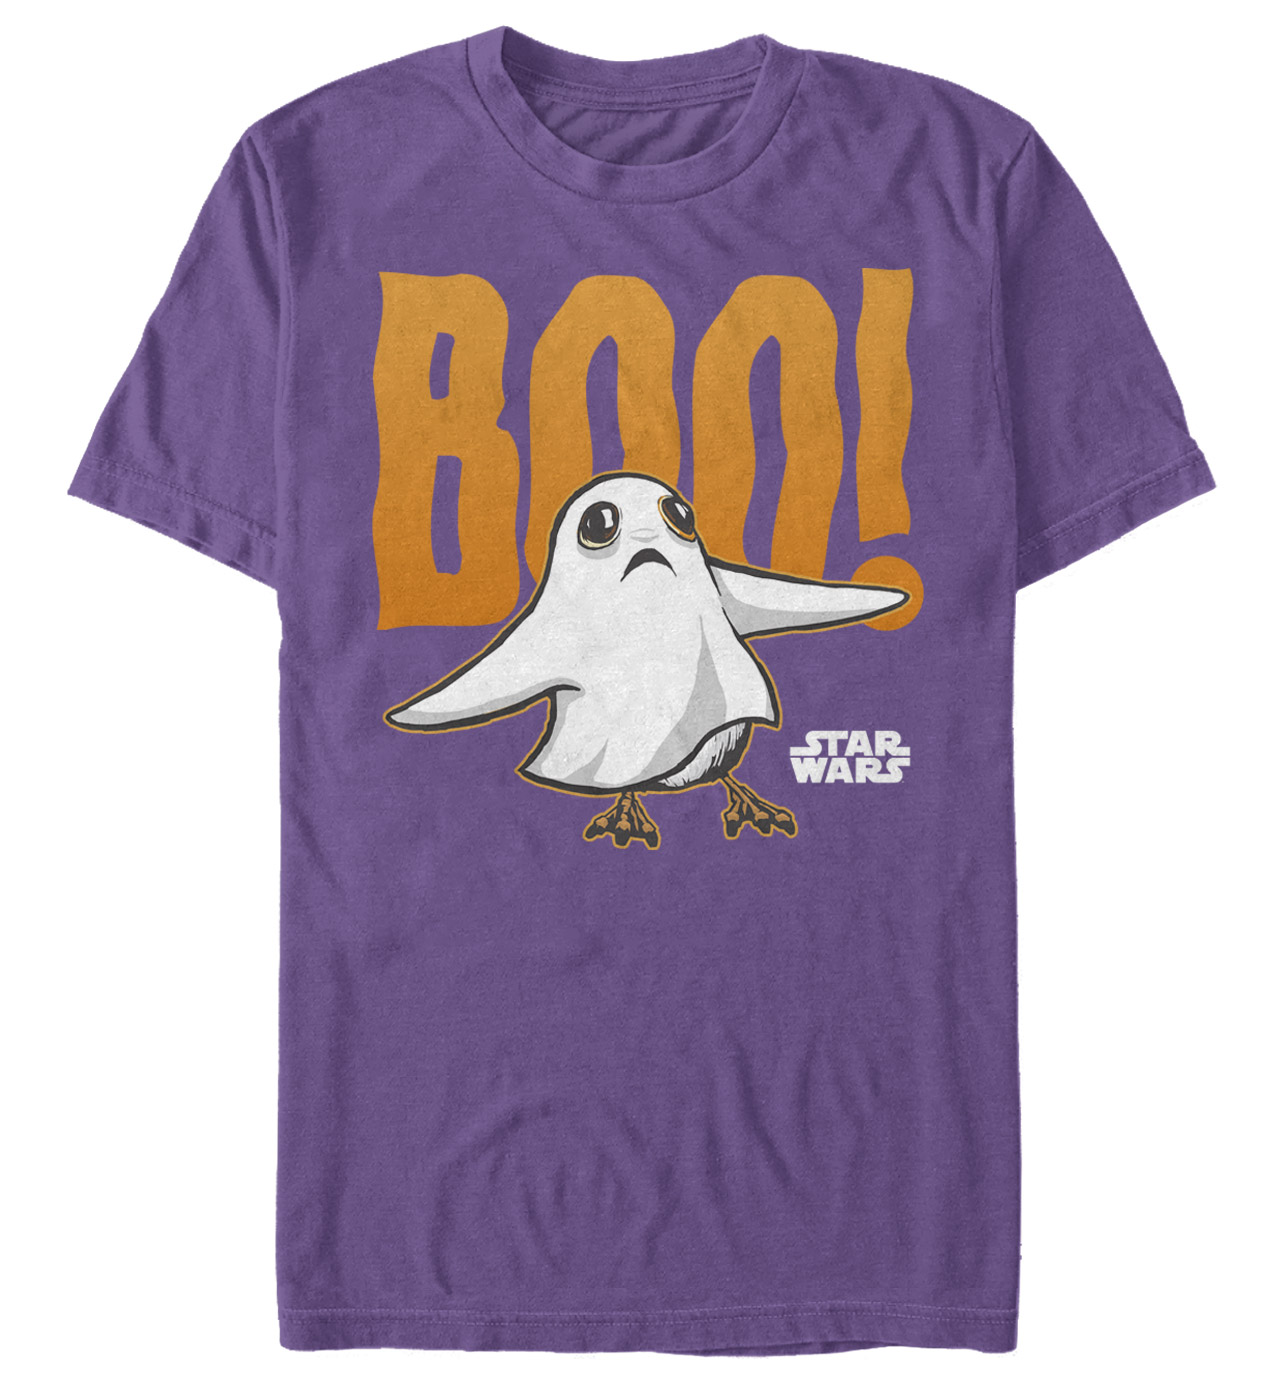 A porg in ghost costume on a shirt.